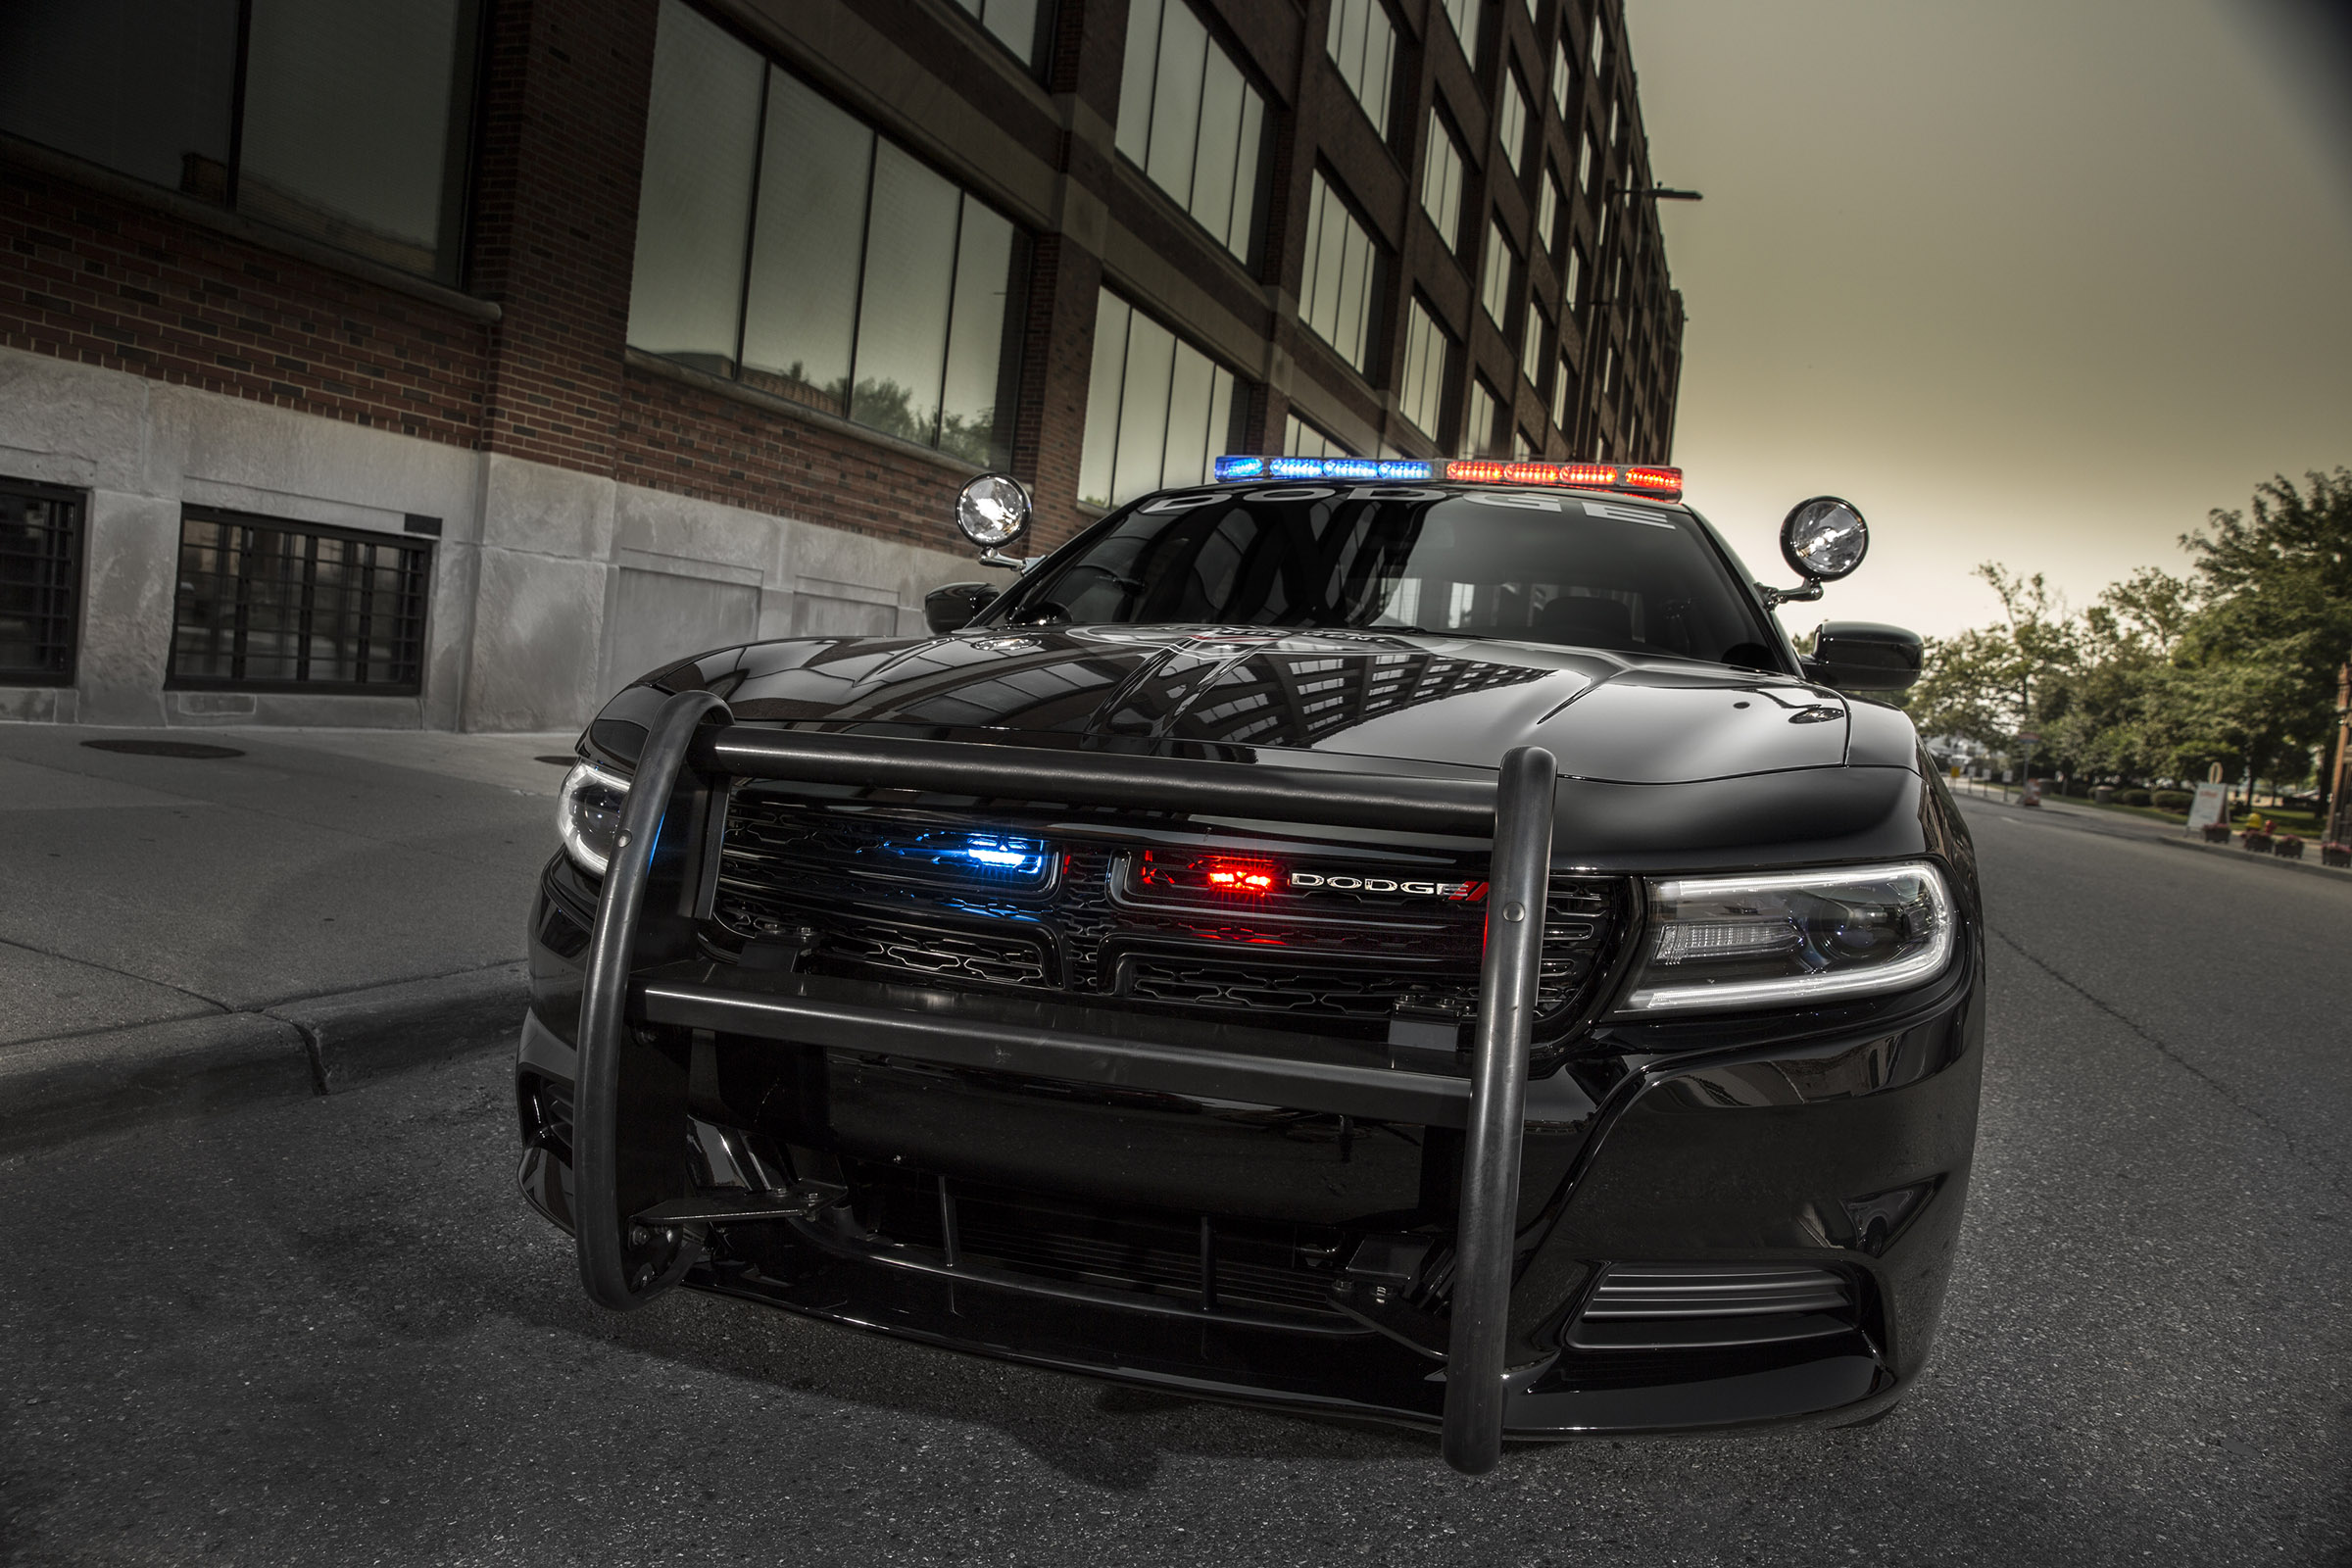 2016 Dodge Charger Pursuit Muscle Cars News And Pictures